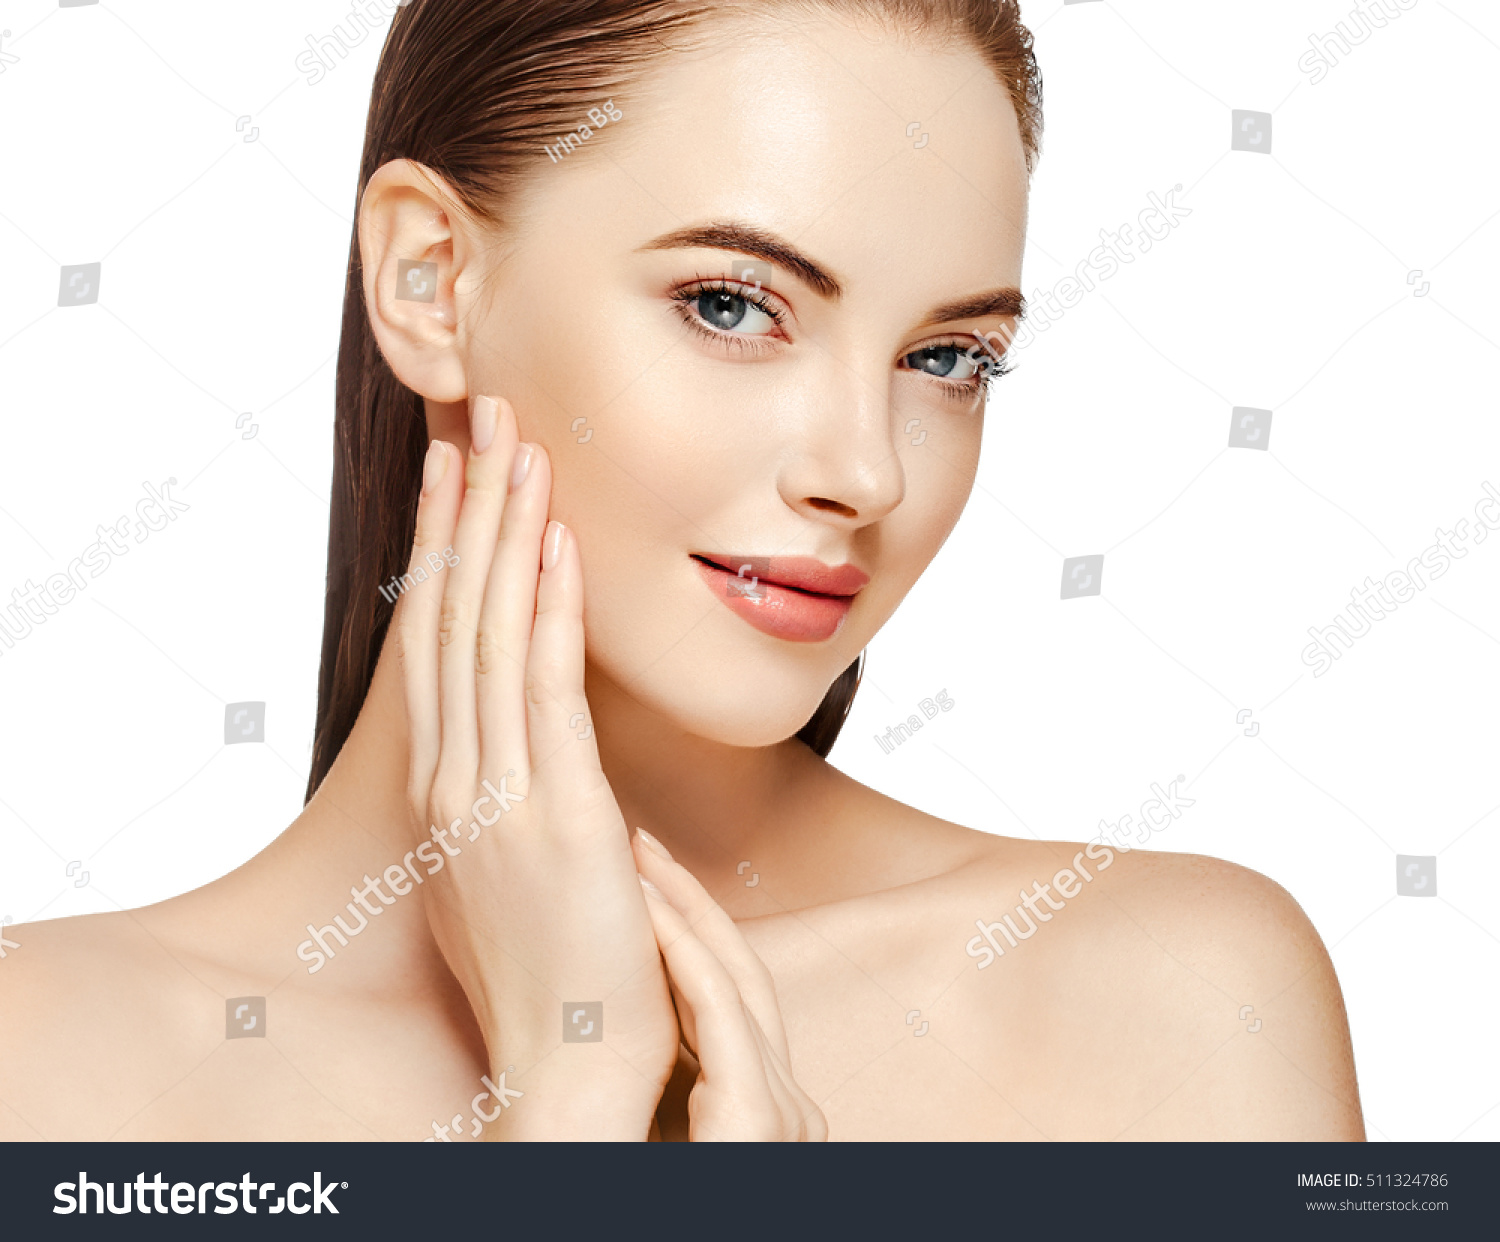 style beauty youthful hands